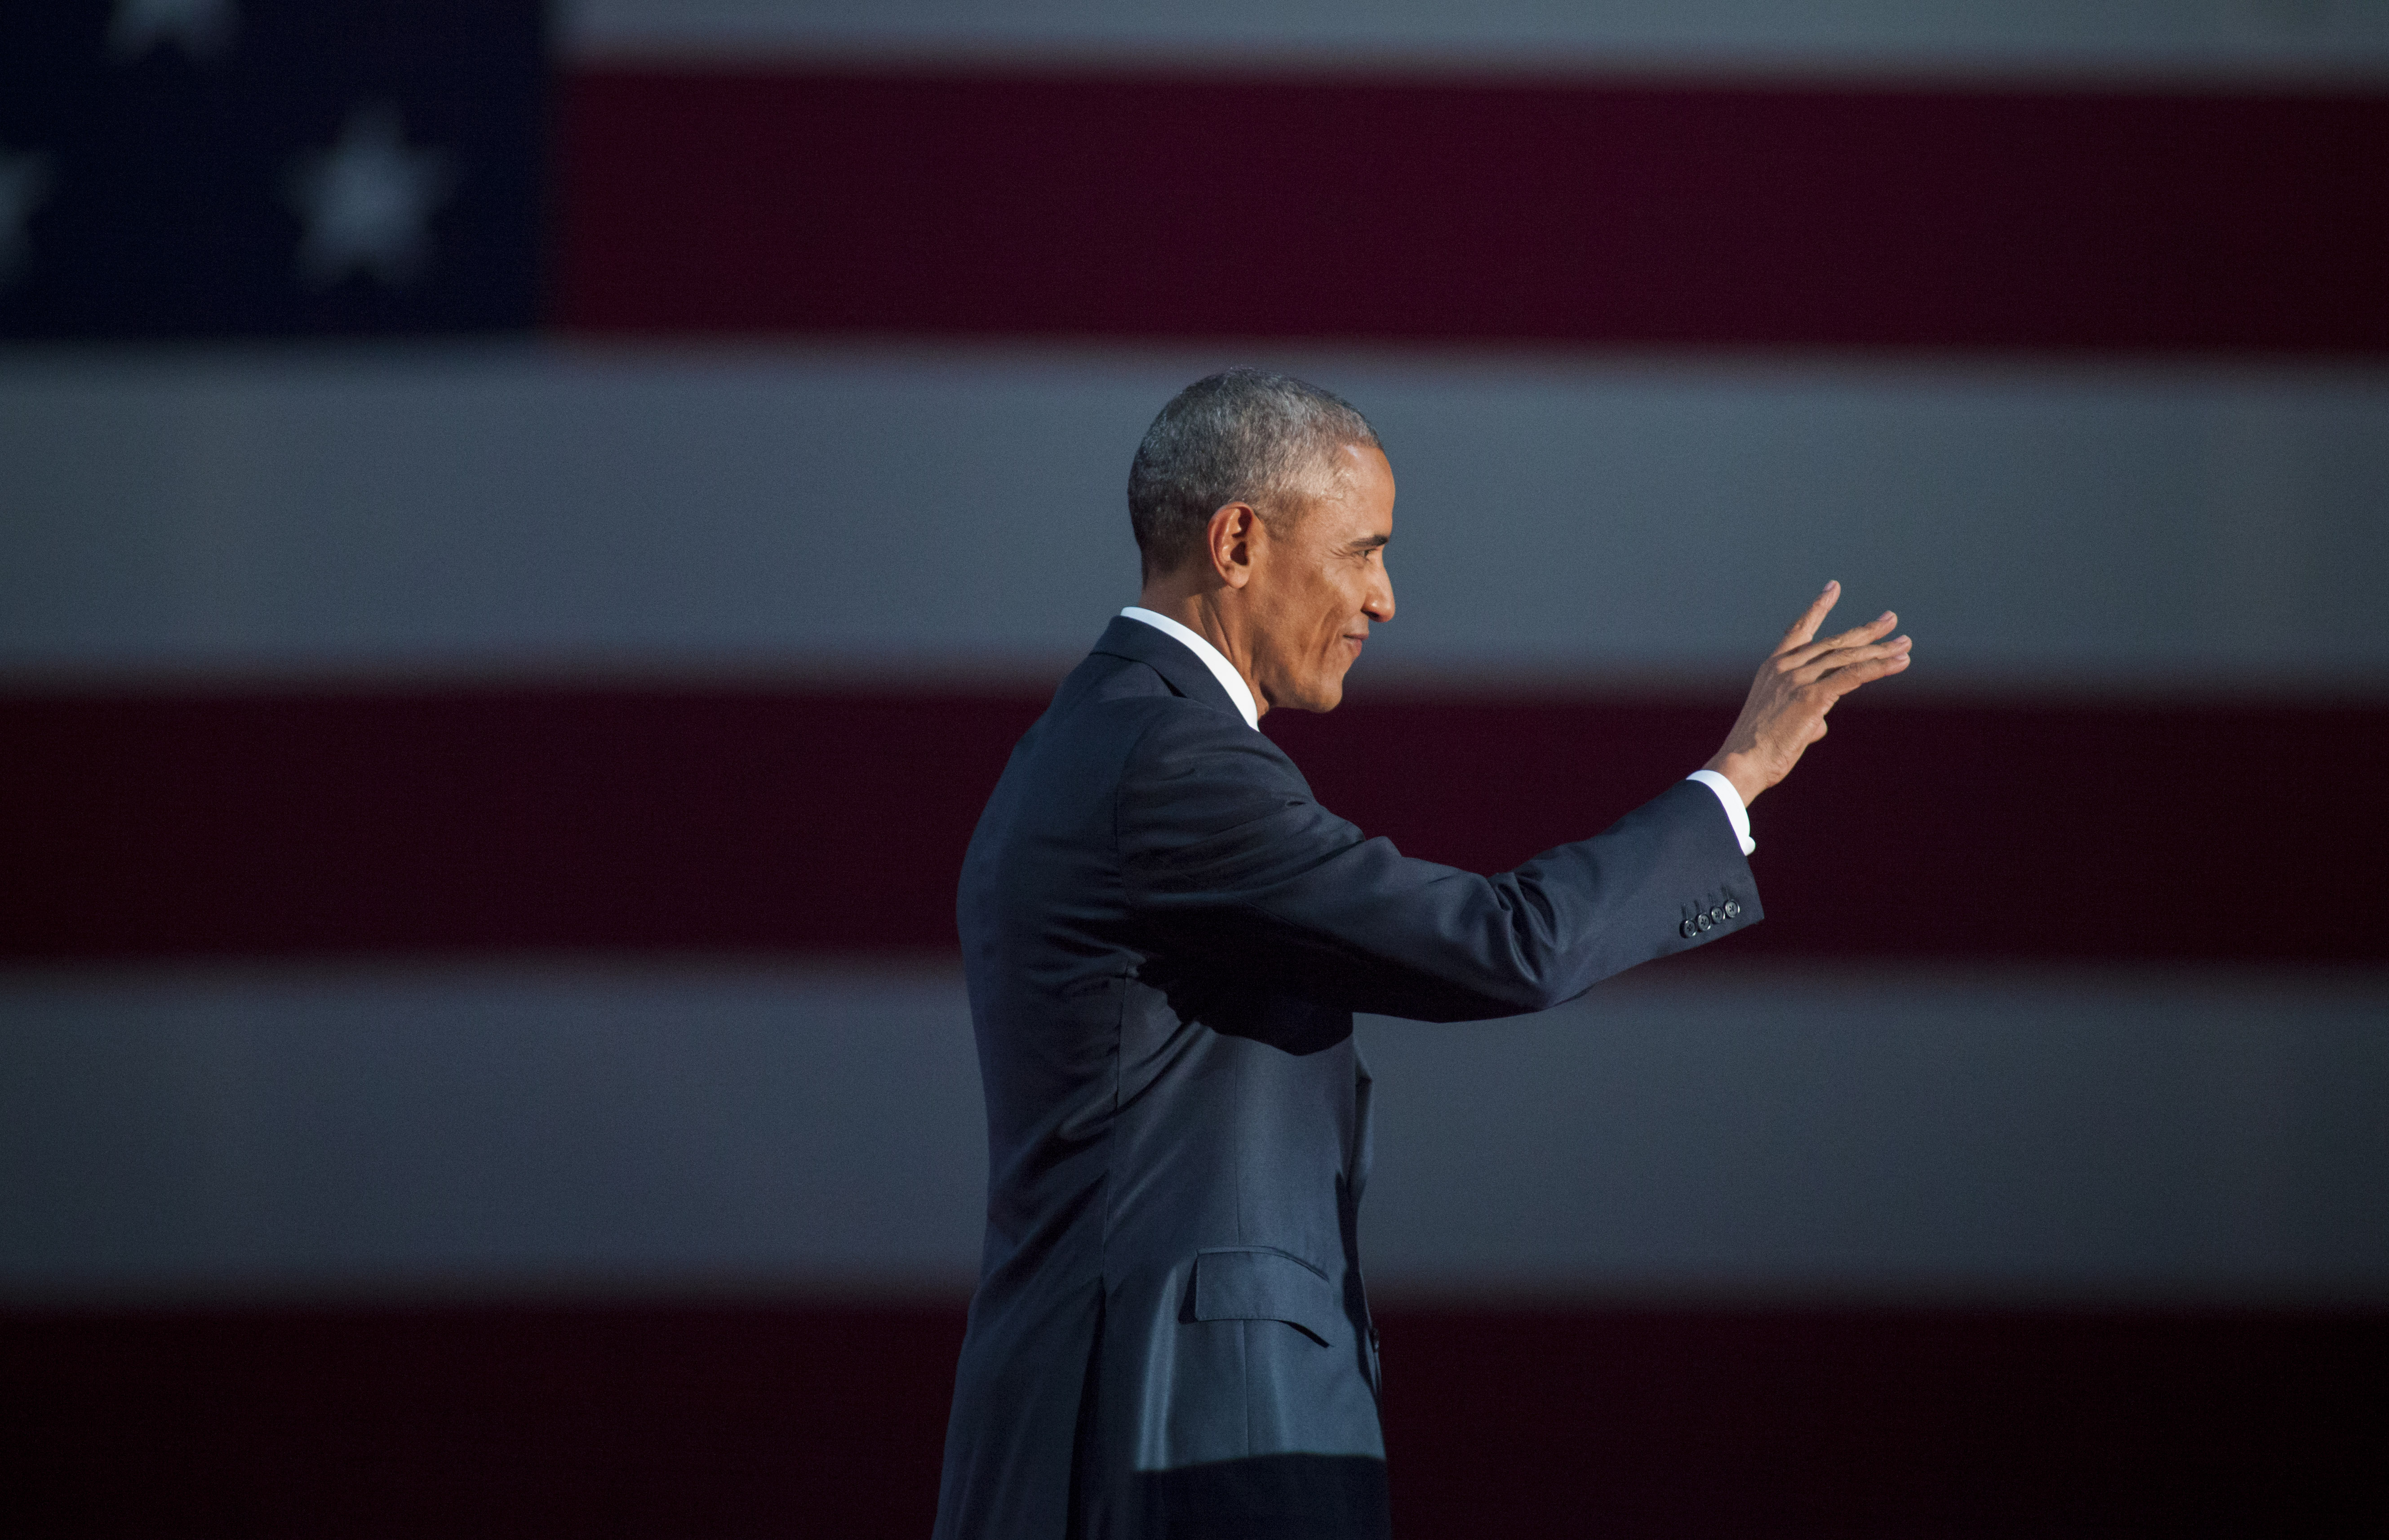 U.S. President Barack Obama walks on stage to deliver his farewell speech at McCormick Place on January 10, 2017 in Chicago, Illinois